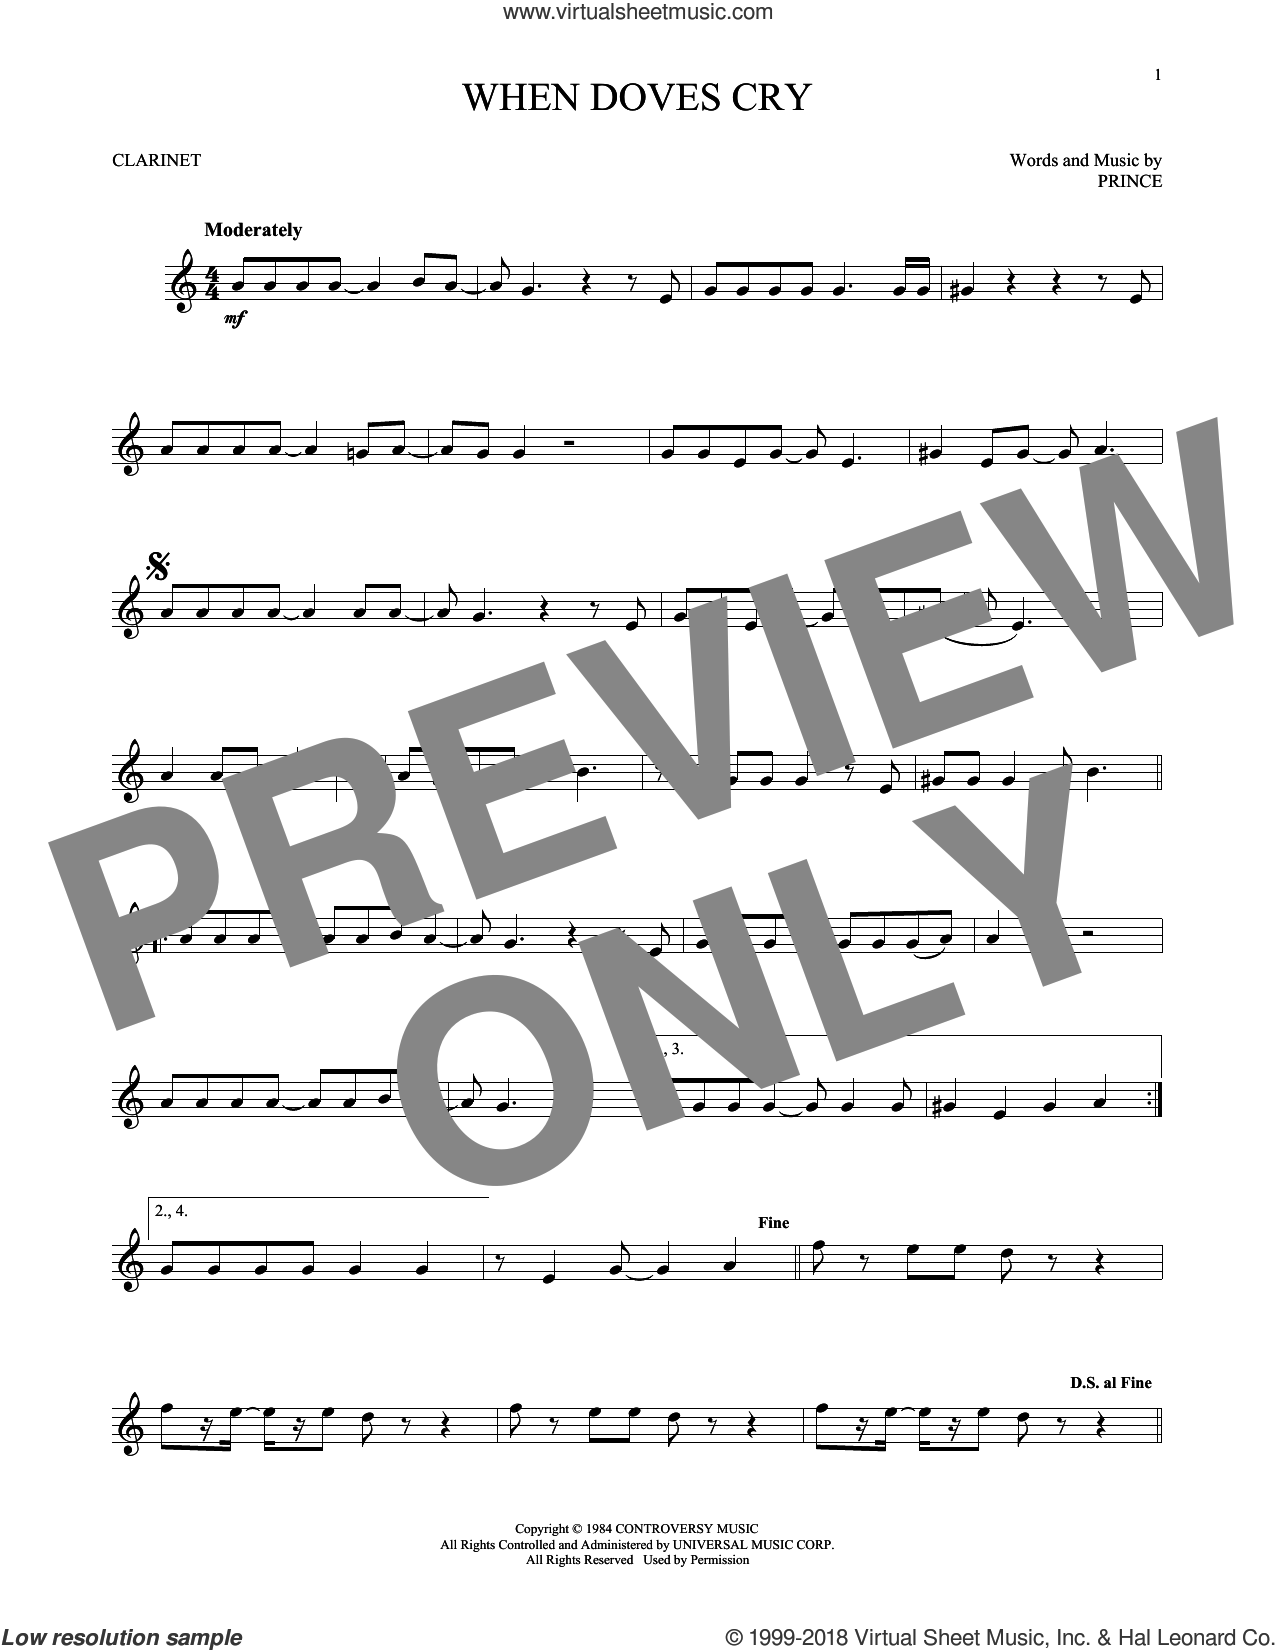 When Doves Cry sheet music for clarinet solo by Prince, intermediate skill level